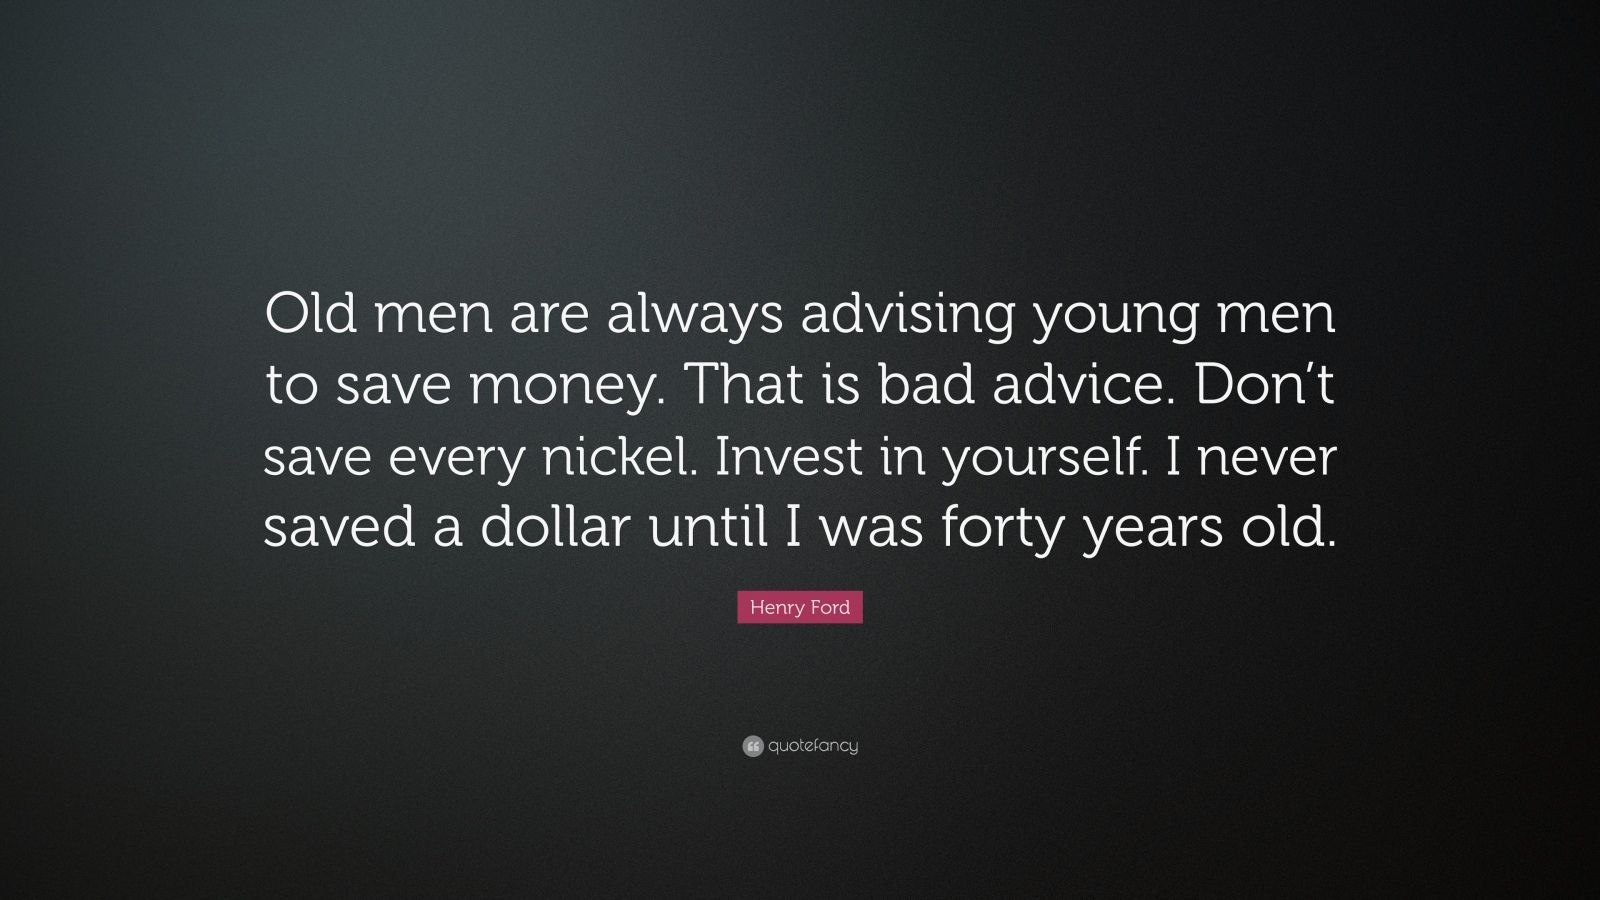 """Henry Ford Quote: """"Old men are always advising young men to save money. That is bad advice. Don't save every nickel. Invest in yourself. I never saved a dollar until I was forty years old."""""""